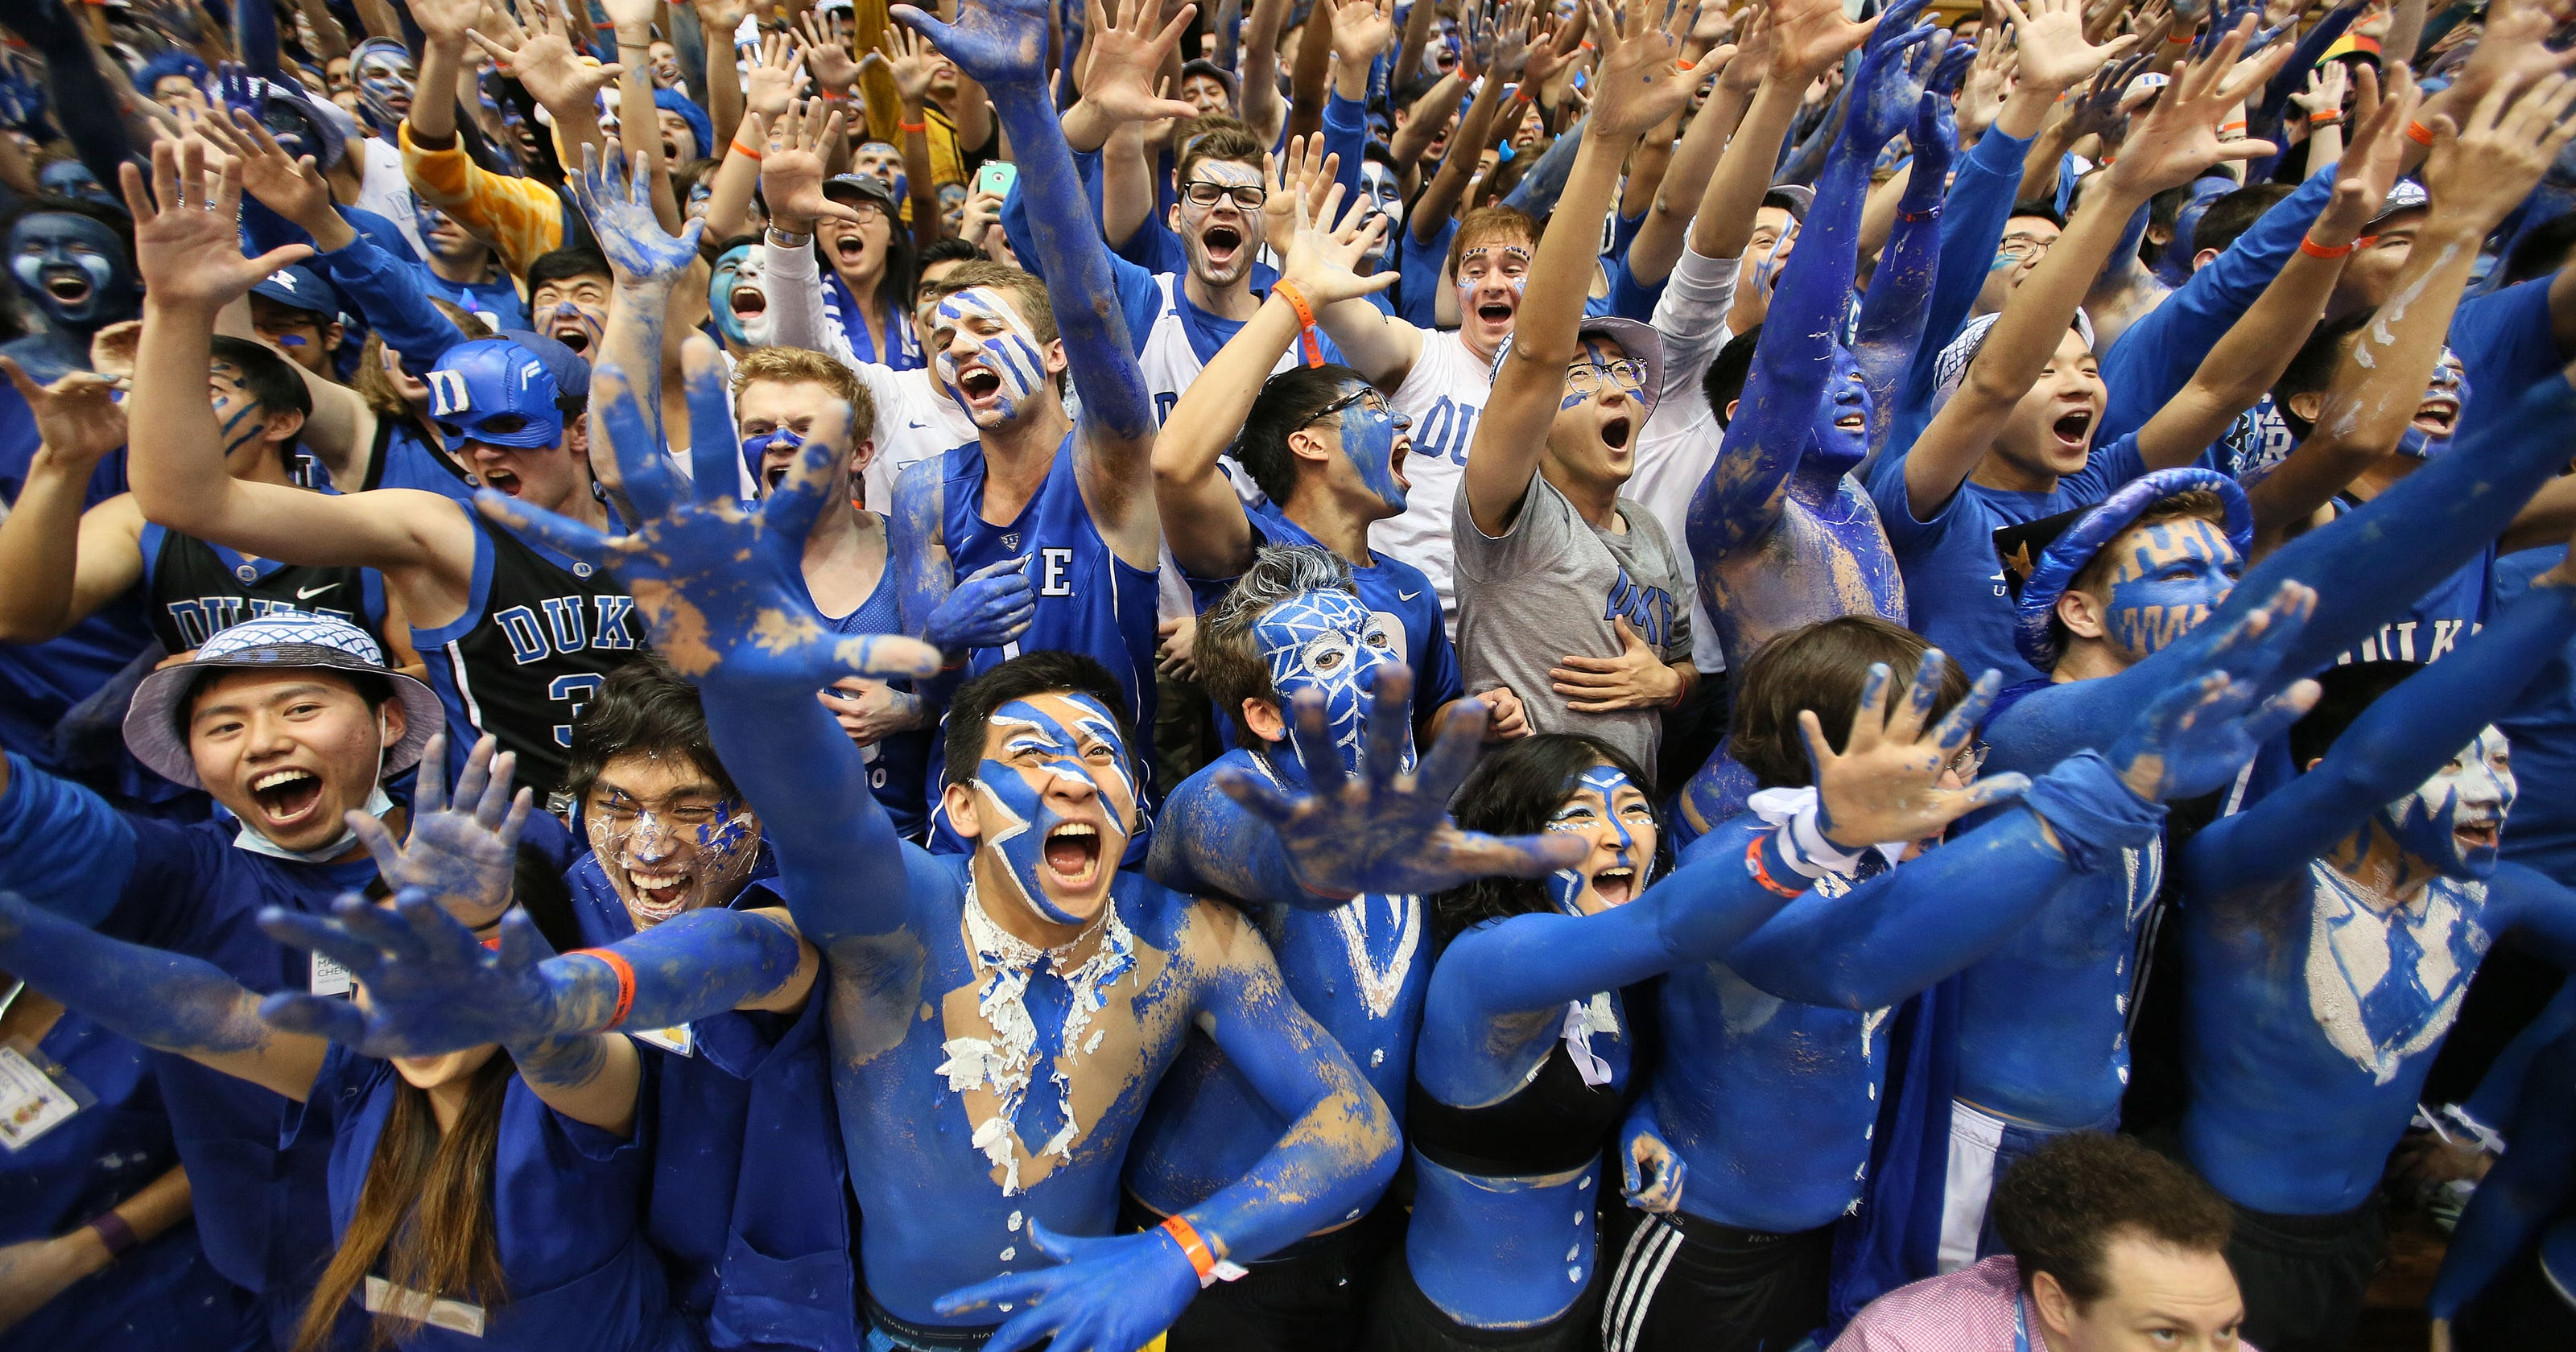 Why Duke fans rocked to 'Everytime We Touch'